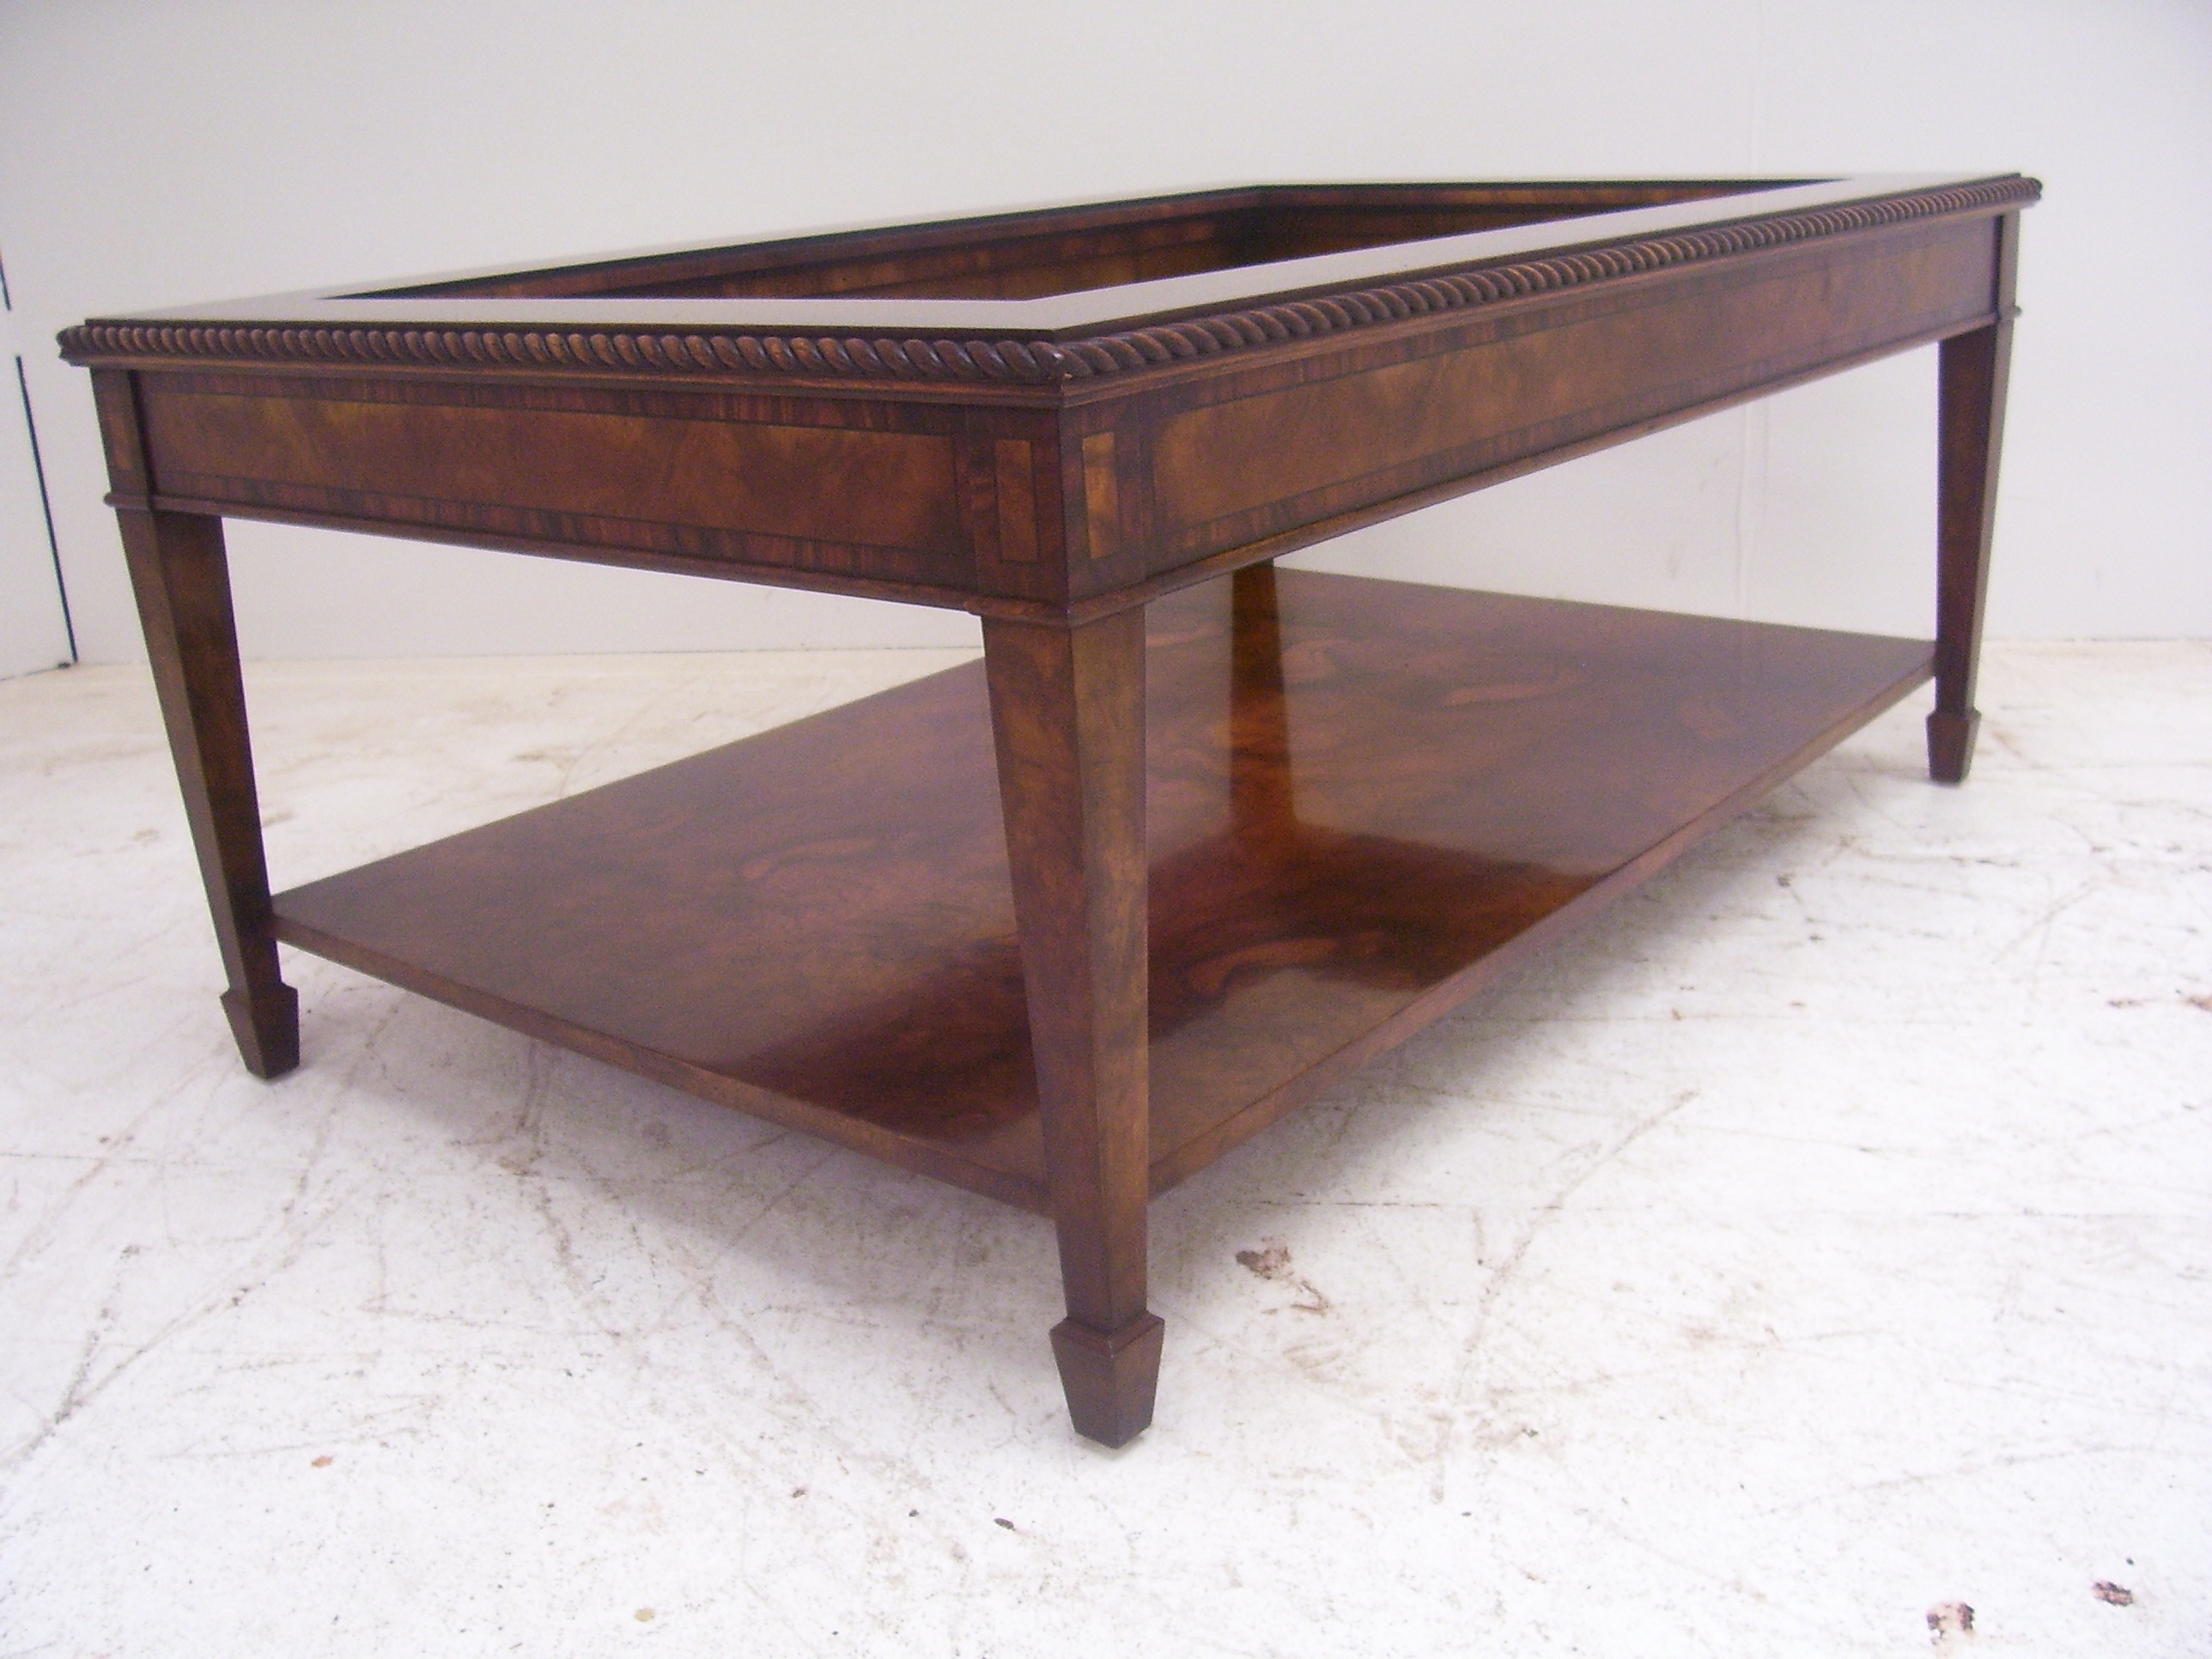 Favorite Donnell Coffee Tables Throughout Product List (View 3 of 20)